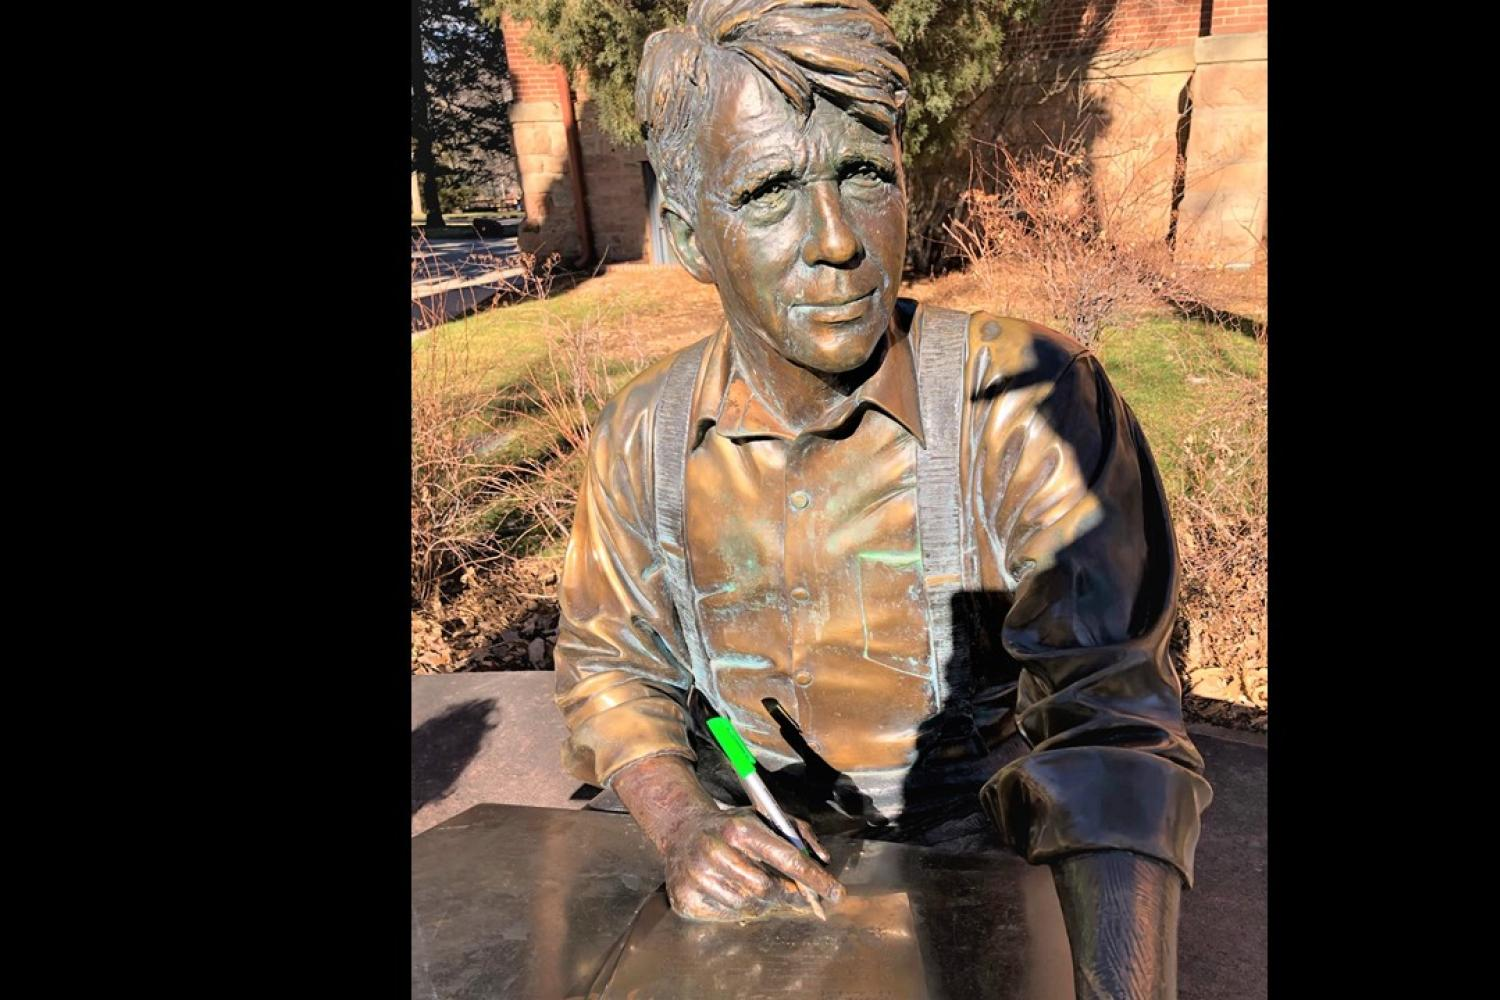 Statue of Robert Frost holding an ASSETT pen